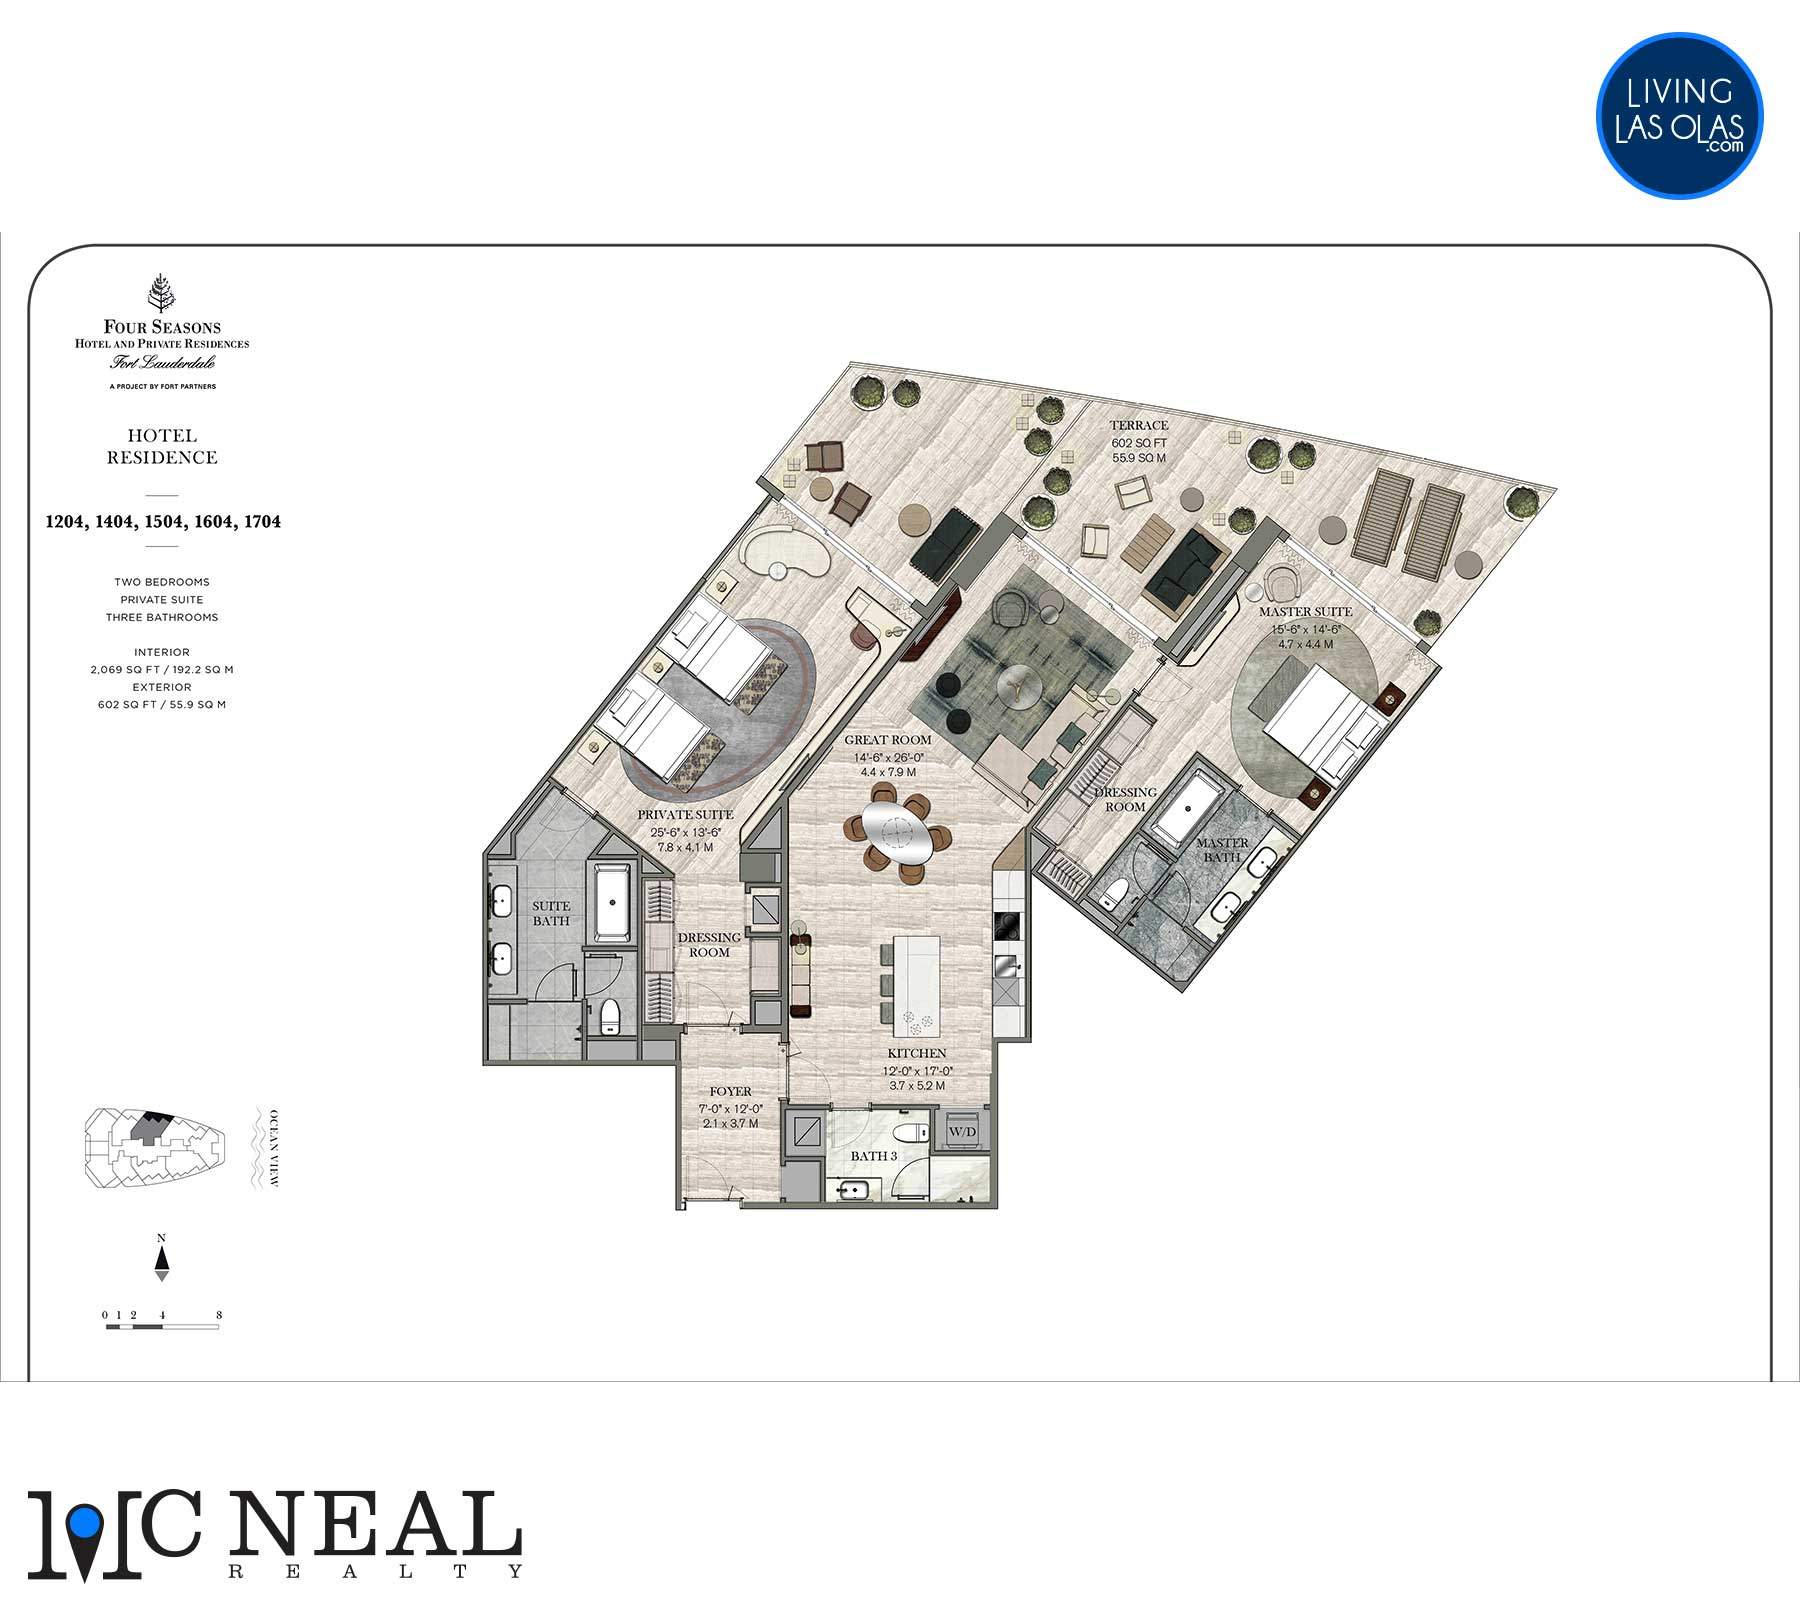 Four Seasons Hotel Residences Floor Plan 1204-1704